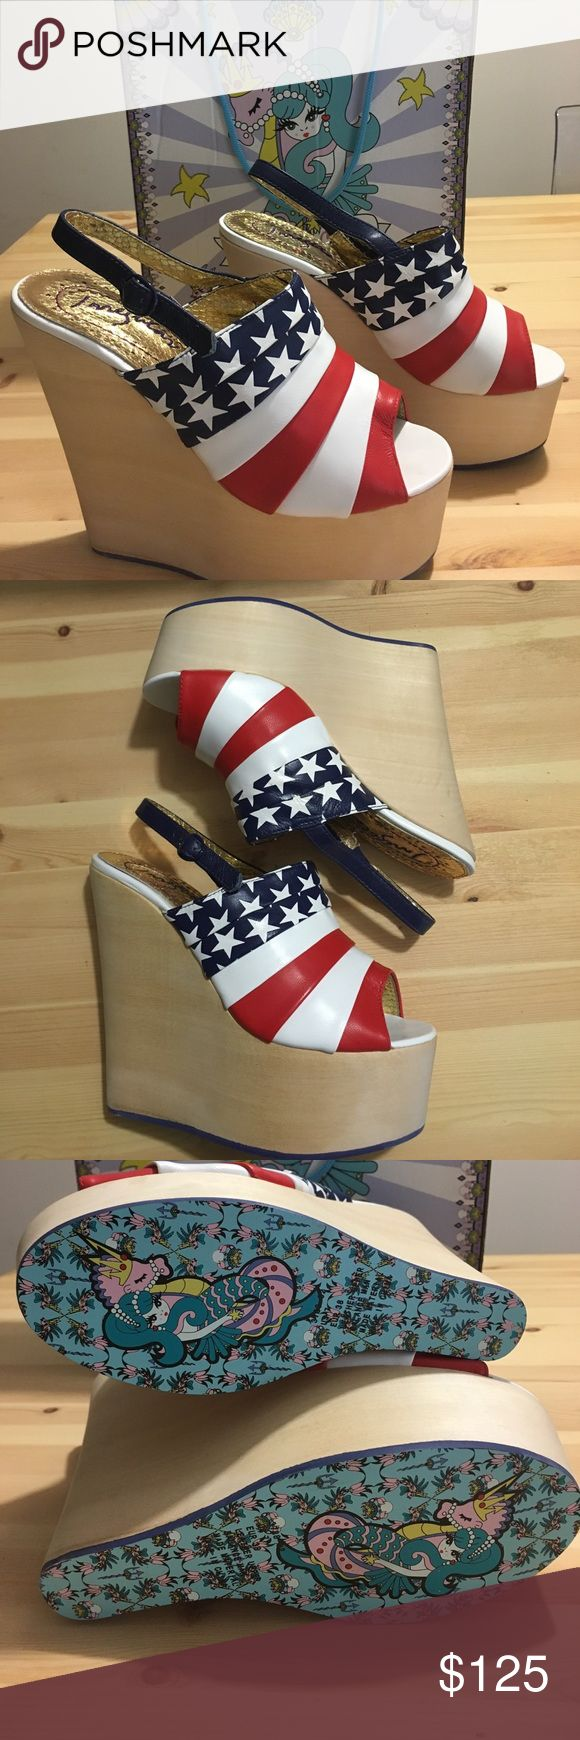 "American Flag Platform Wedge - W7 Never worn - In box! Purchased from Free People - Irregular Choice ""Chica Chola"" platform wedge with American Flag pattern. So perfect for Fourth of July and the summer! Sold out everywhere! Free People Shoes Platforms"